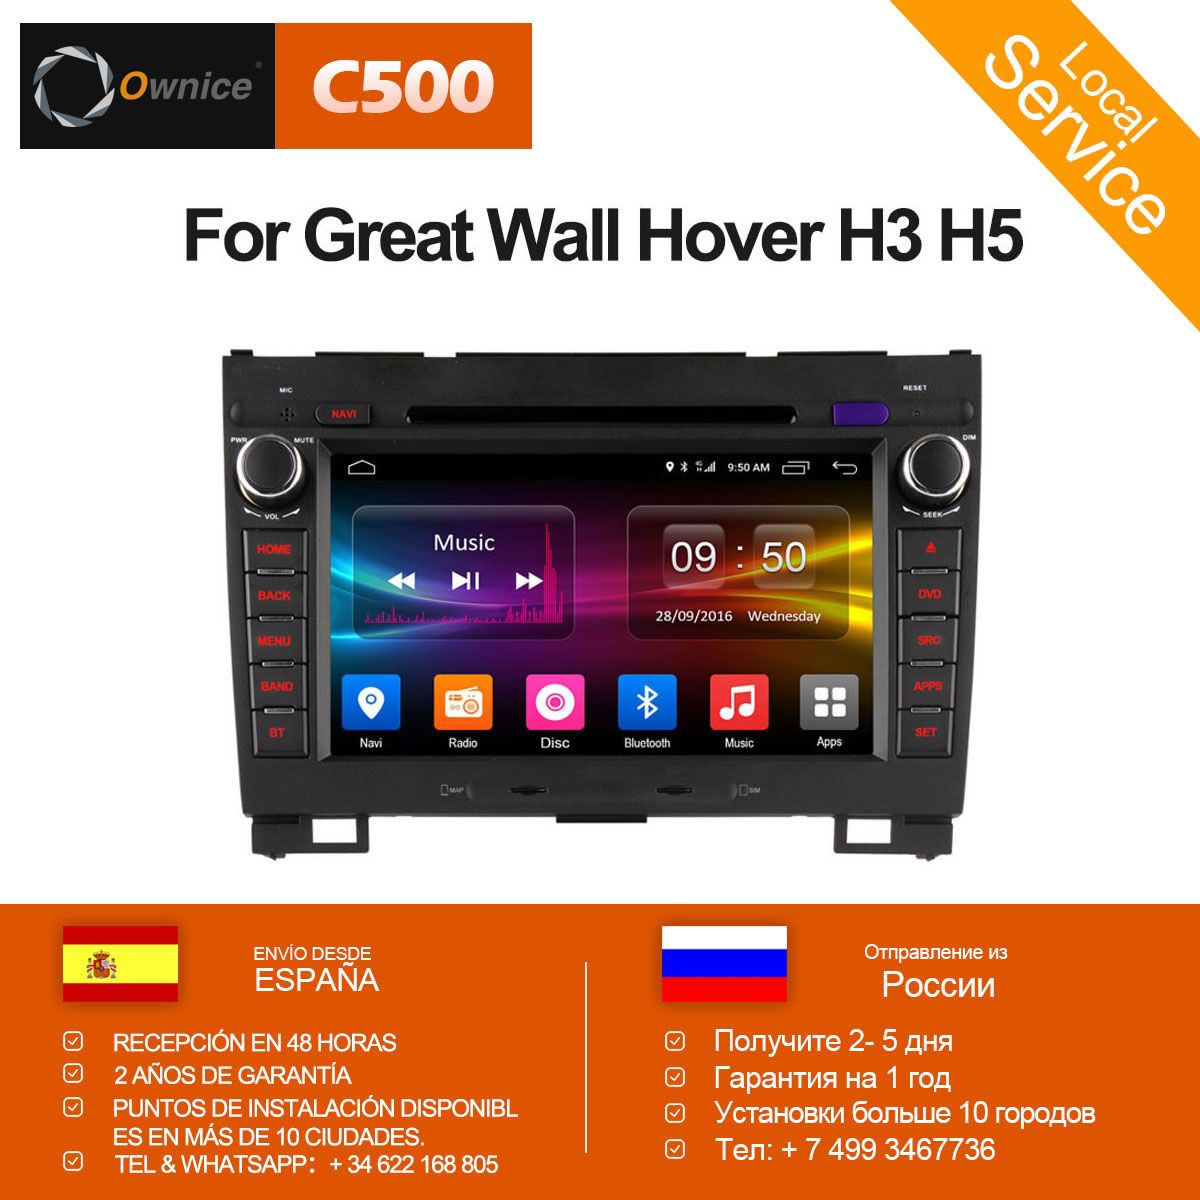 Ownice C500 4g SIM LTE Android 6.0 Quad Core Auto dvd player für Great Haval Hover H5 H3 gps navi radio WIFI 2 gb RAM 32 gb